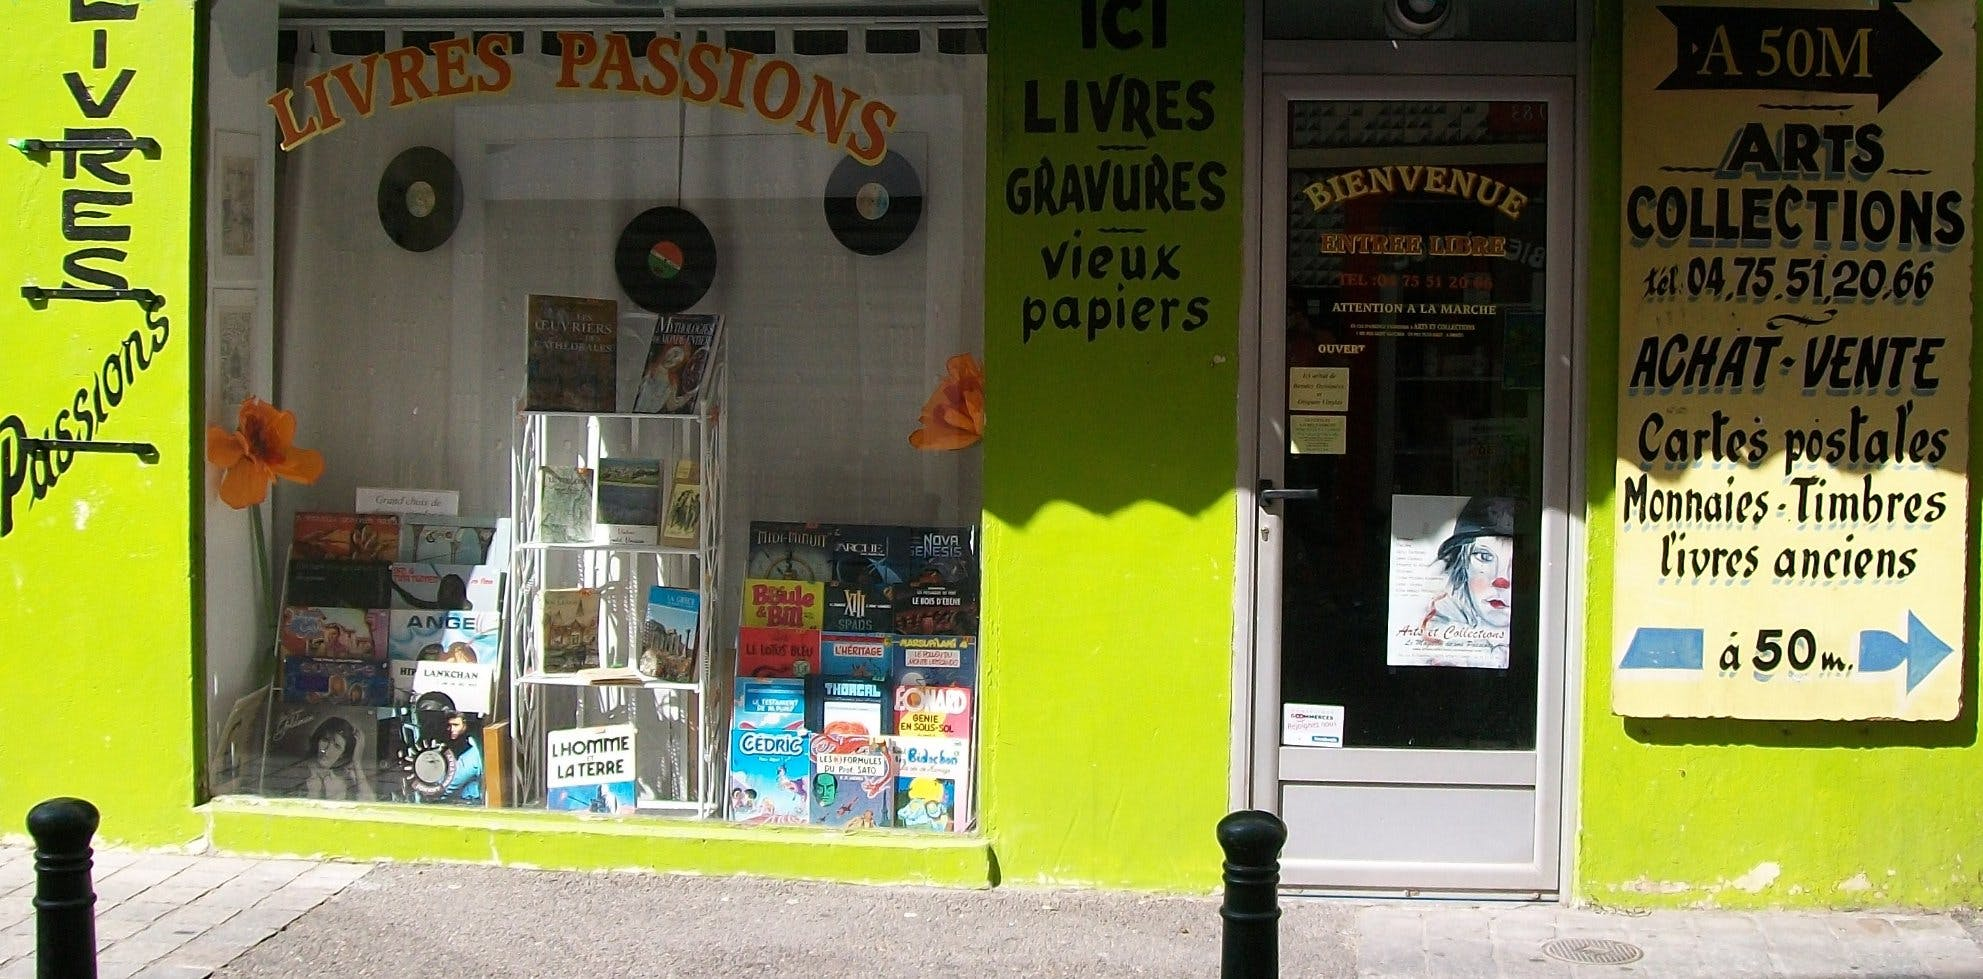 Livres Passions - Record Store Image